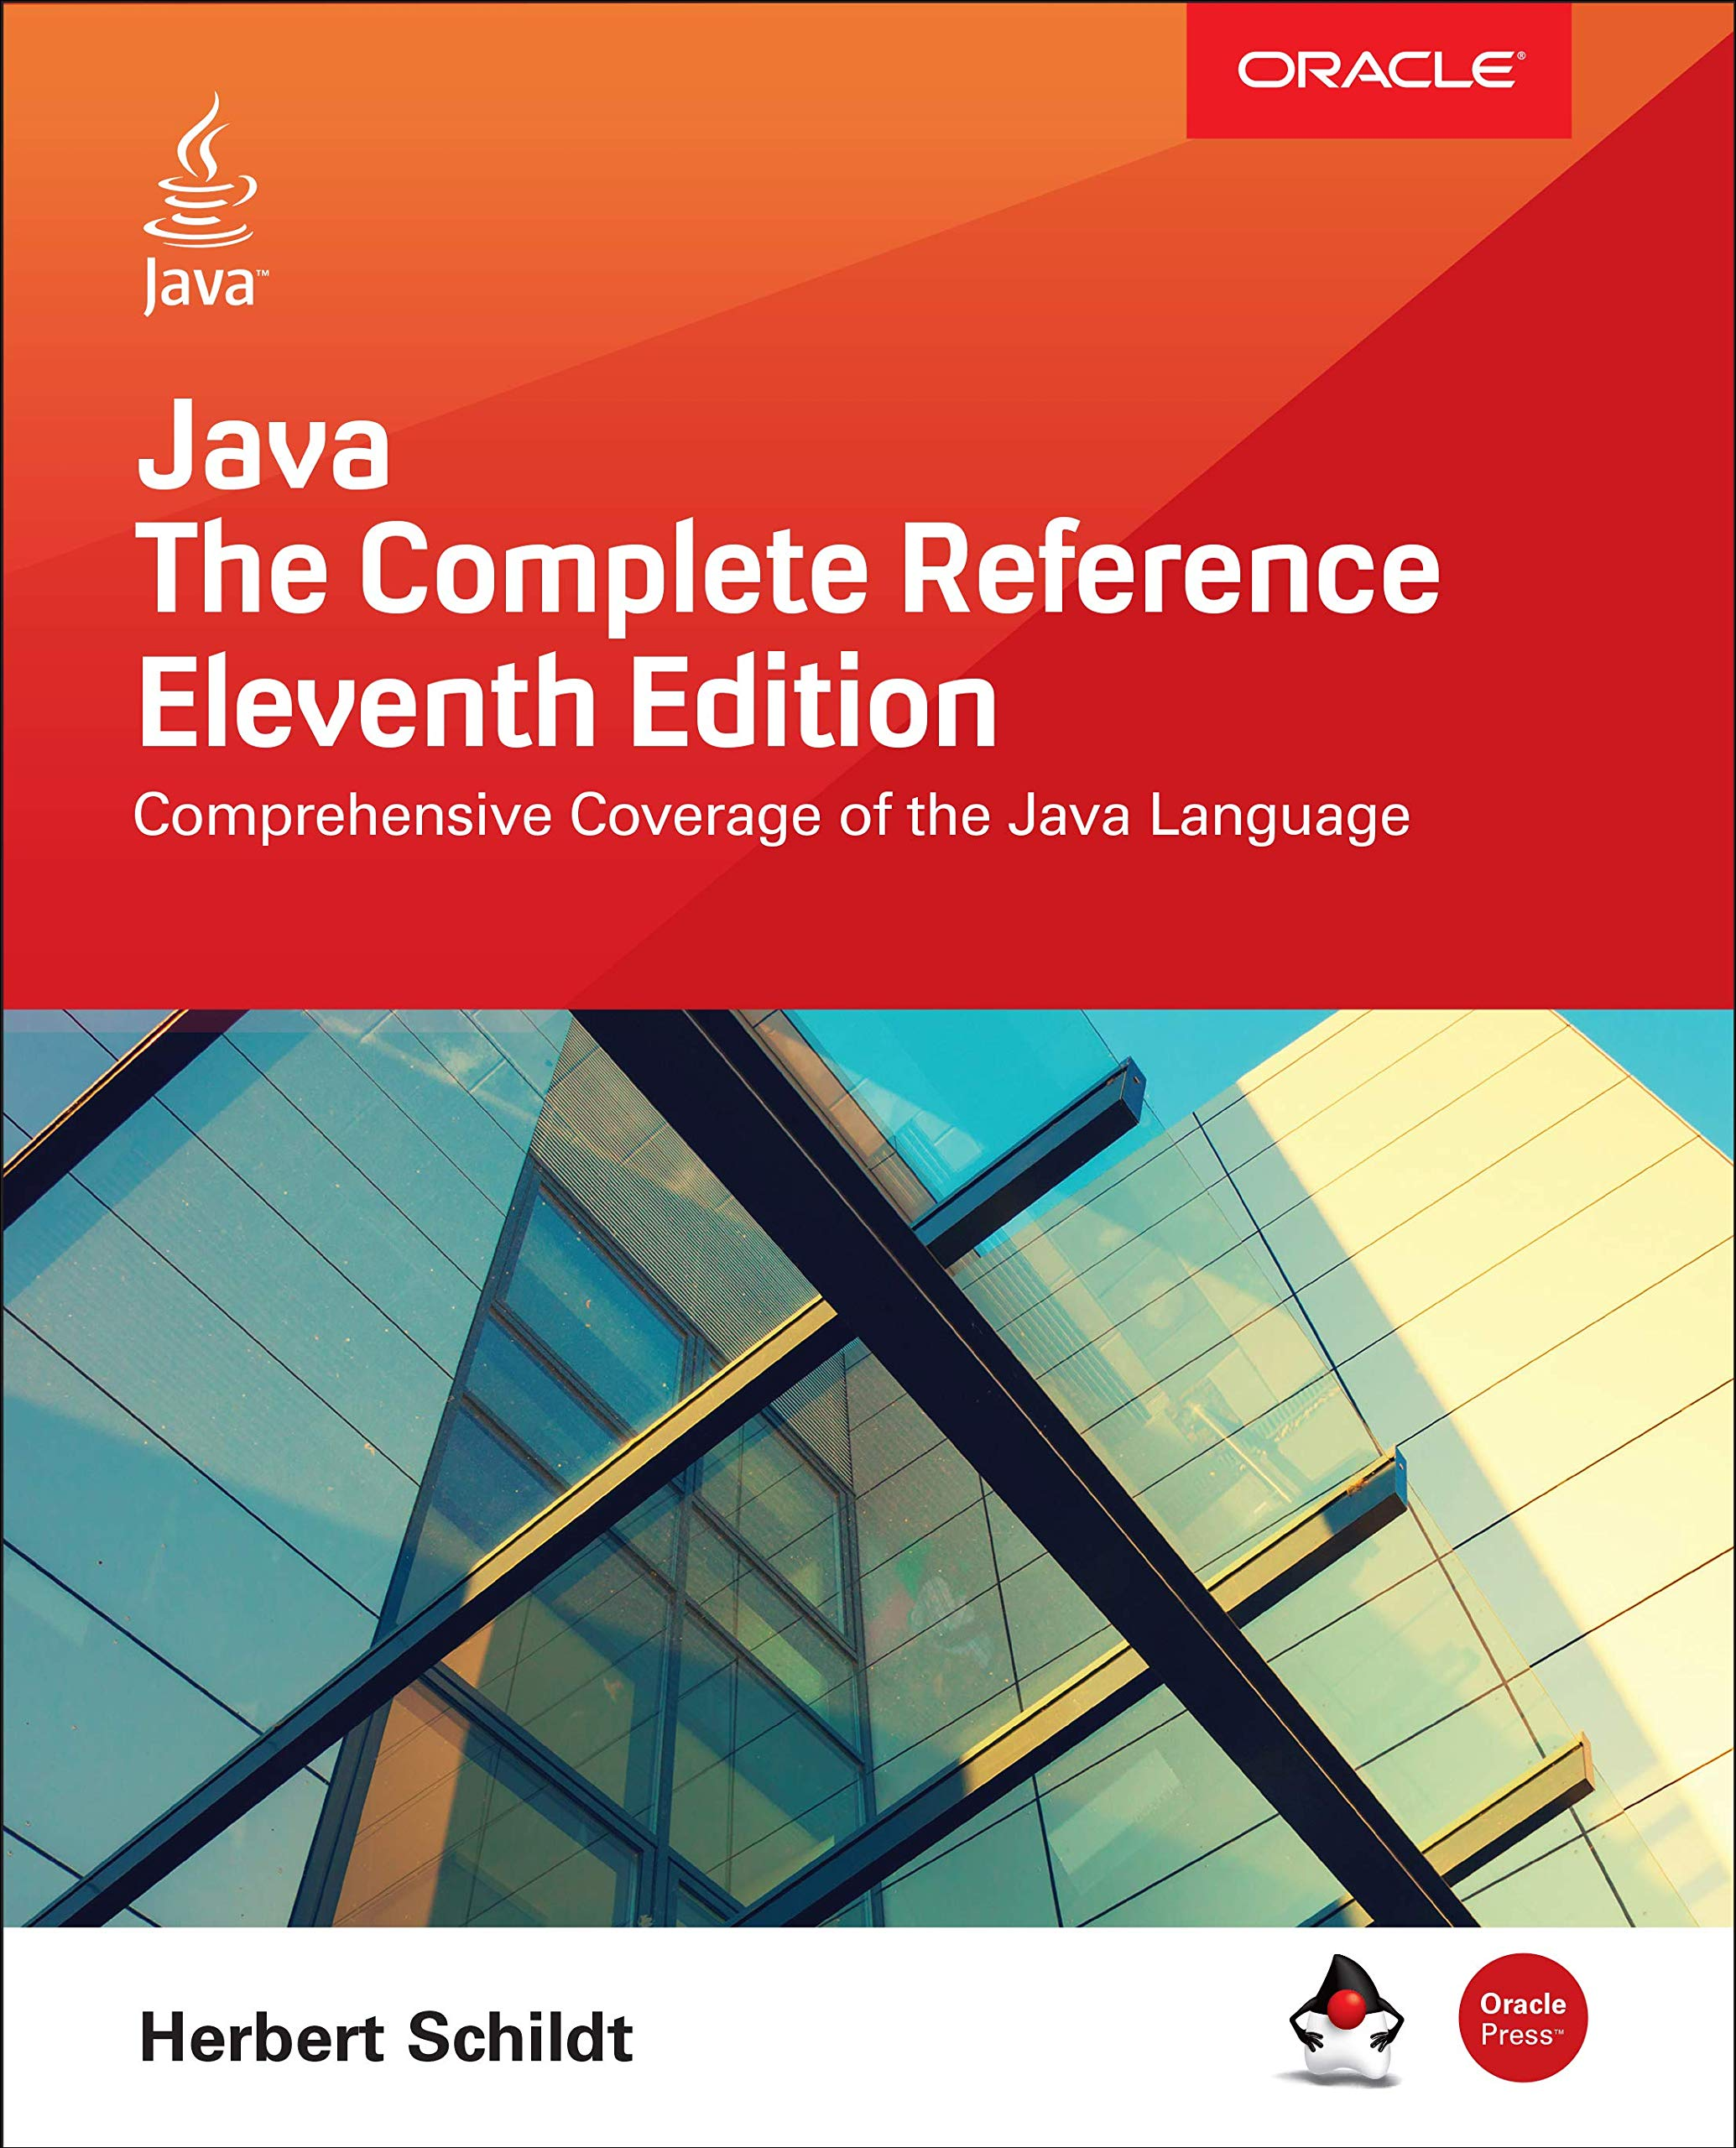 8745a2fdca Buy Java: The Complete Reference, Eleventh Edition Book Online at ...